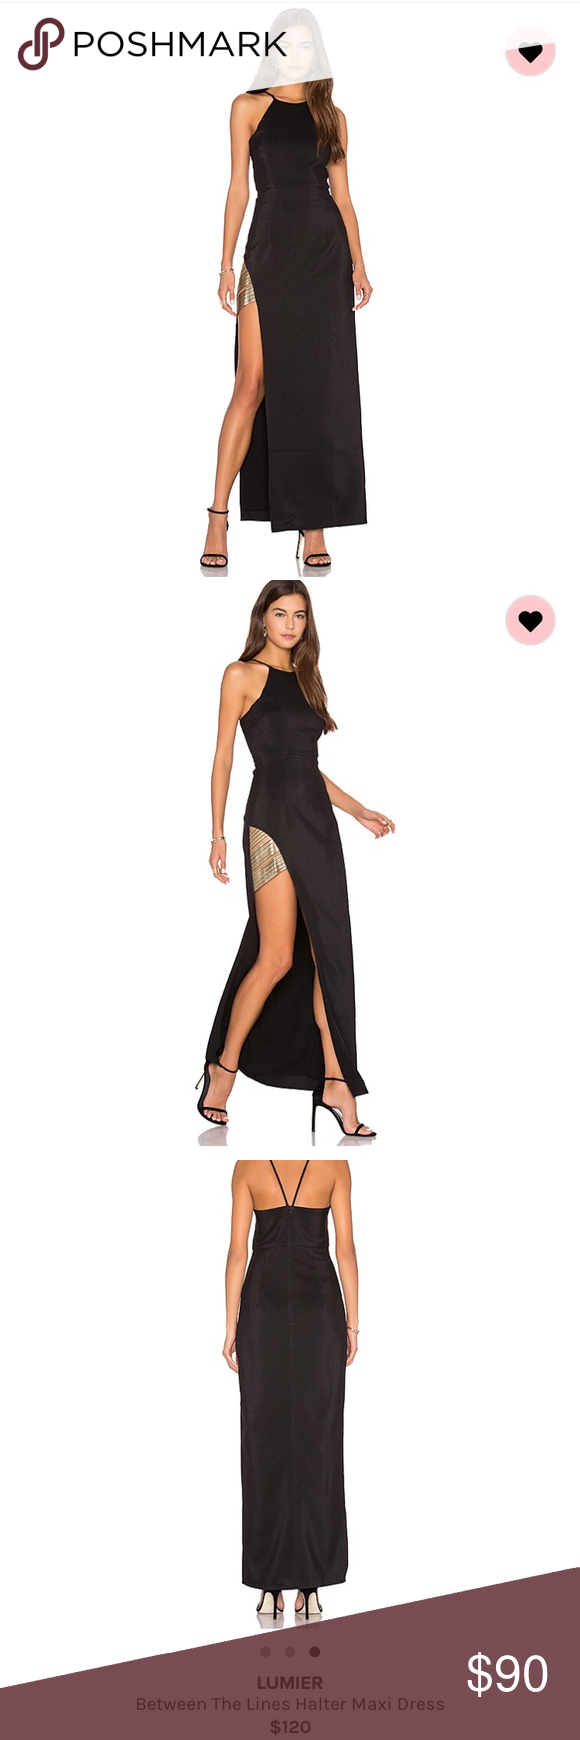 Lumier between the lines maxi dress sold out beautiful black maxi